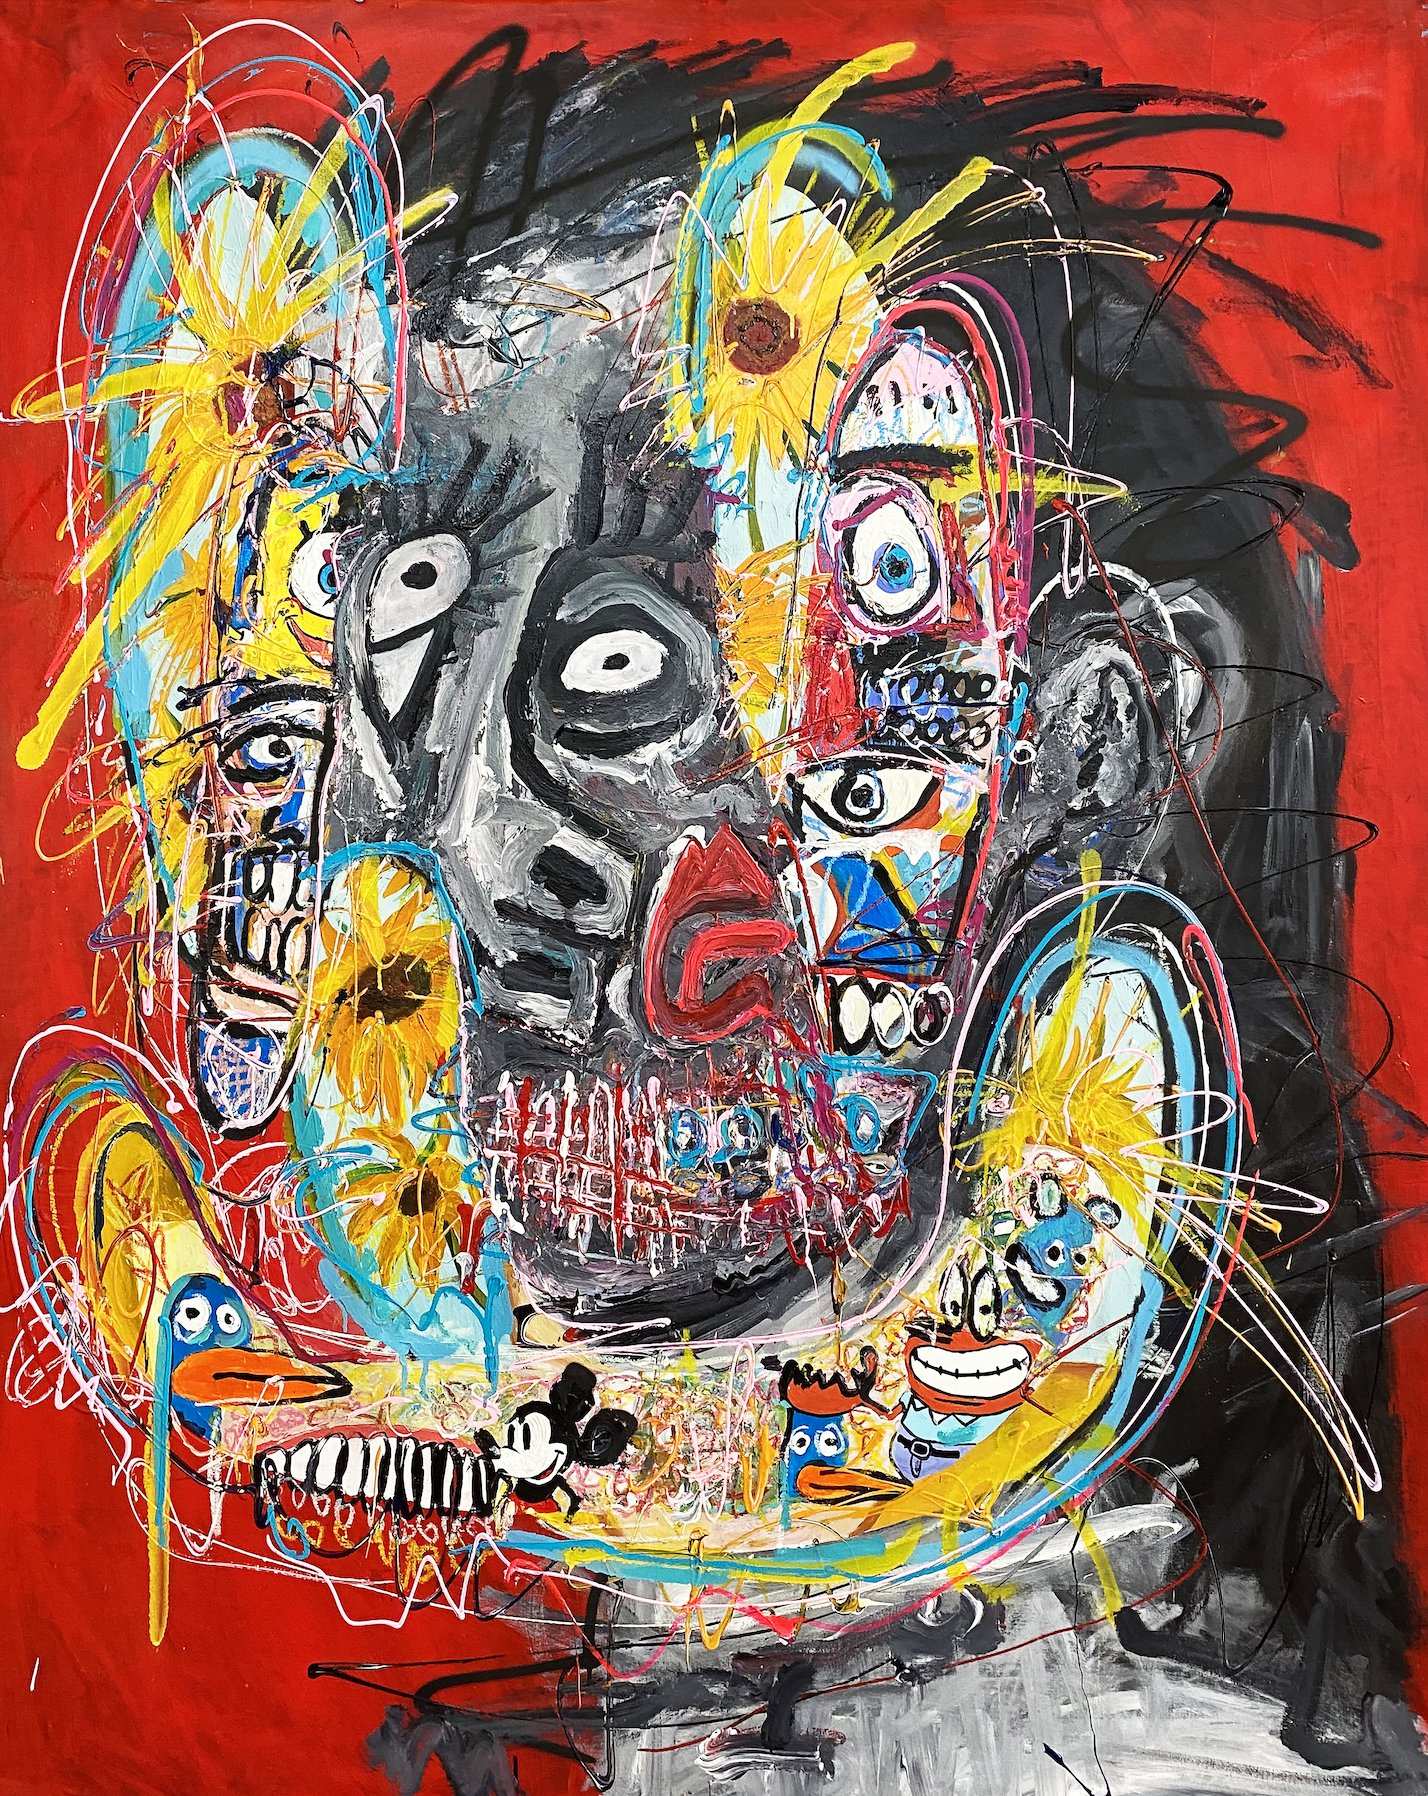 Portrait of the Soul Red by John Paul Fauves